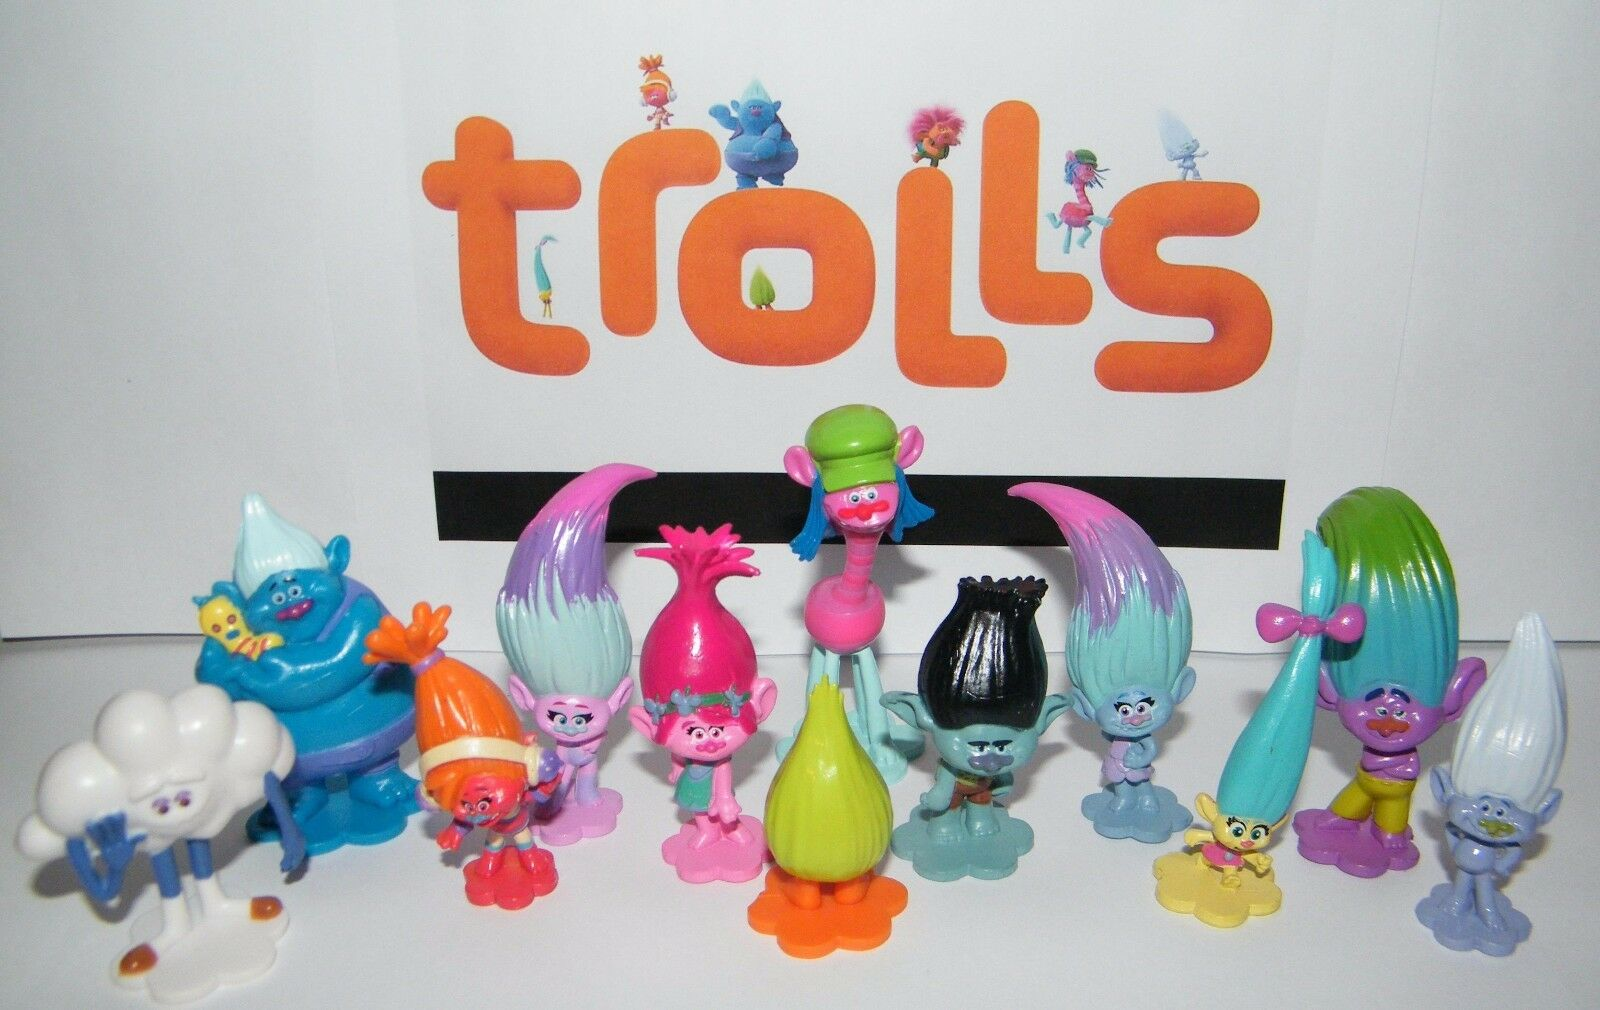 Dreamworks Trolls Movie Party Favors Set of 17 with Figures